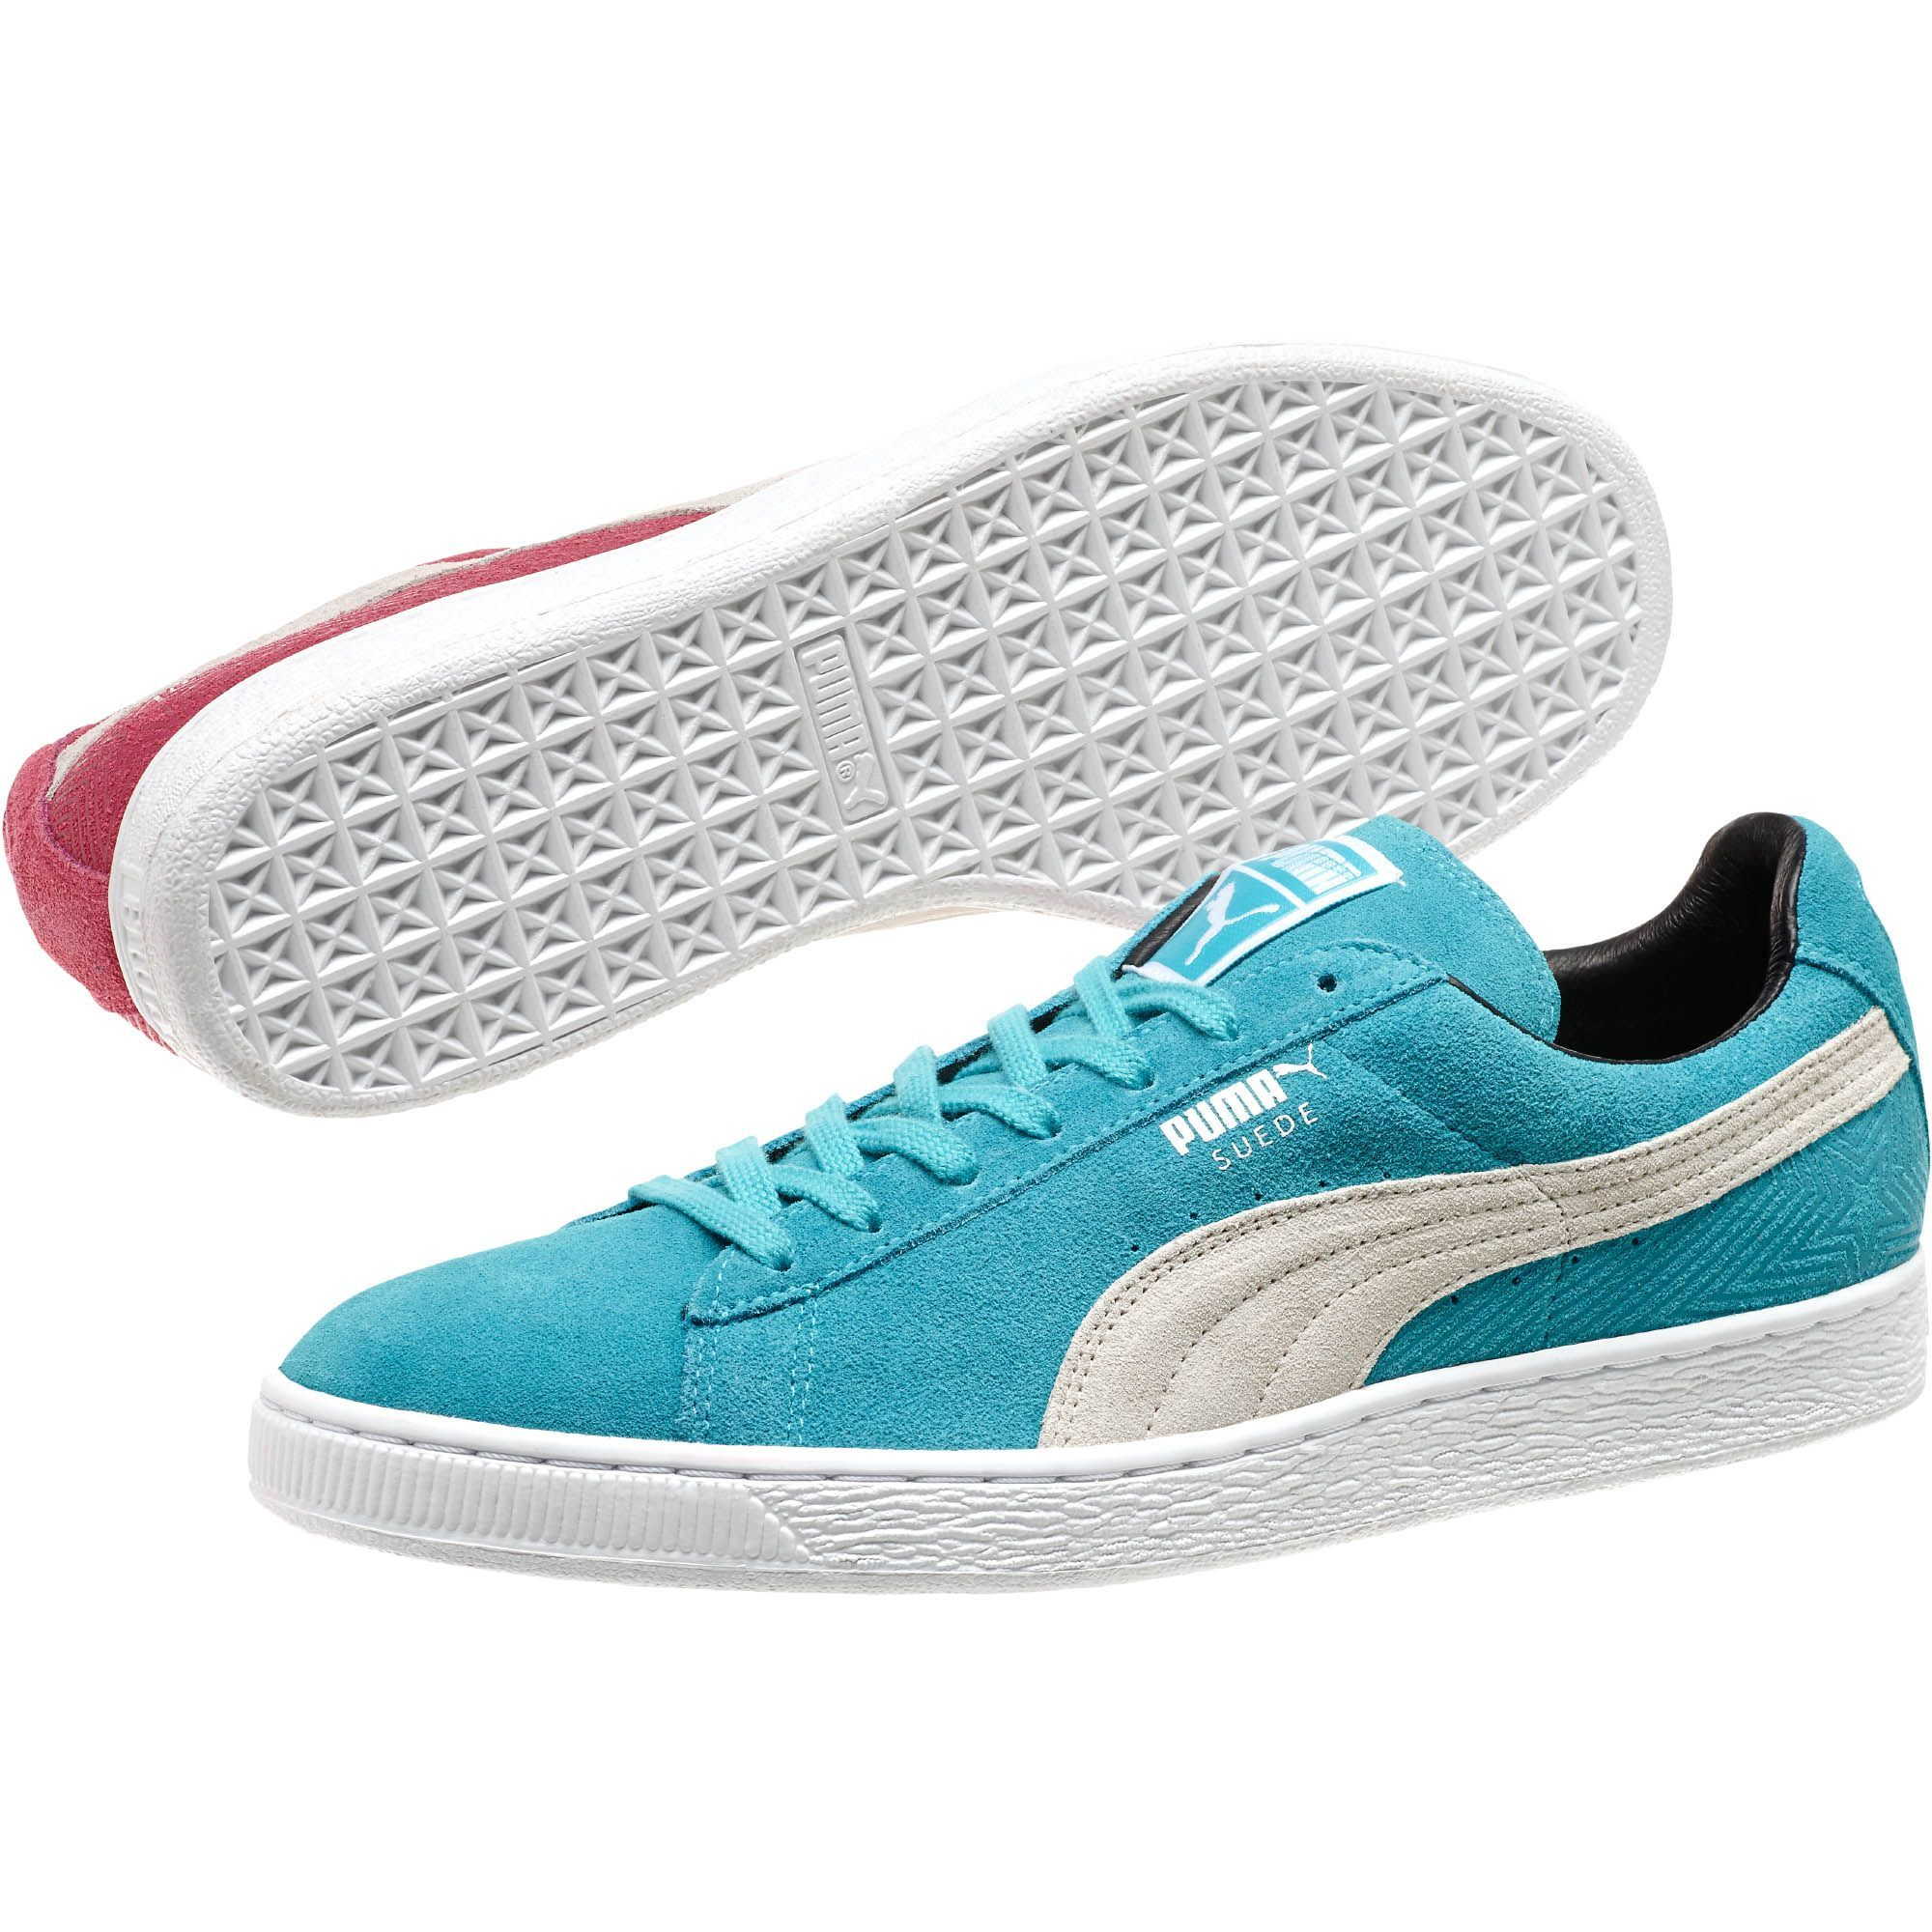 PUMA Suede Classic + Tricks Men's Sneakers | - from the official Puma®  Online Store